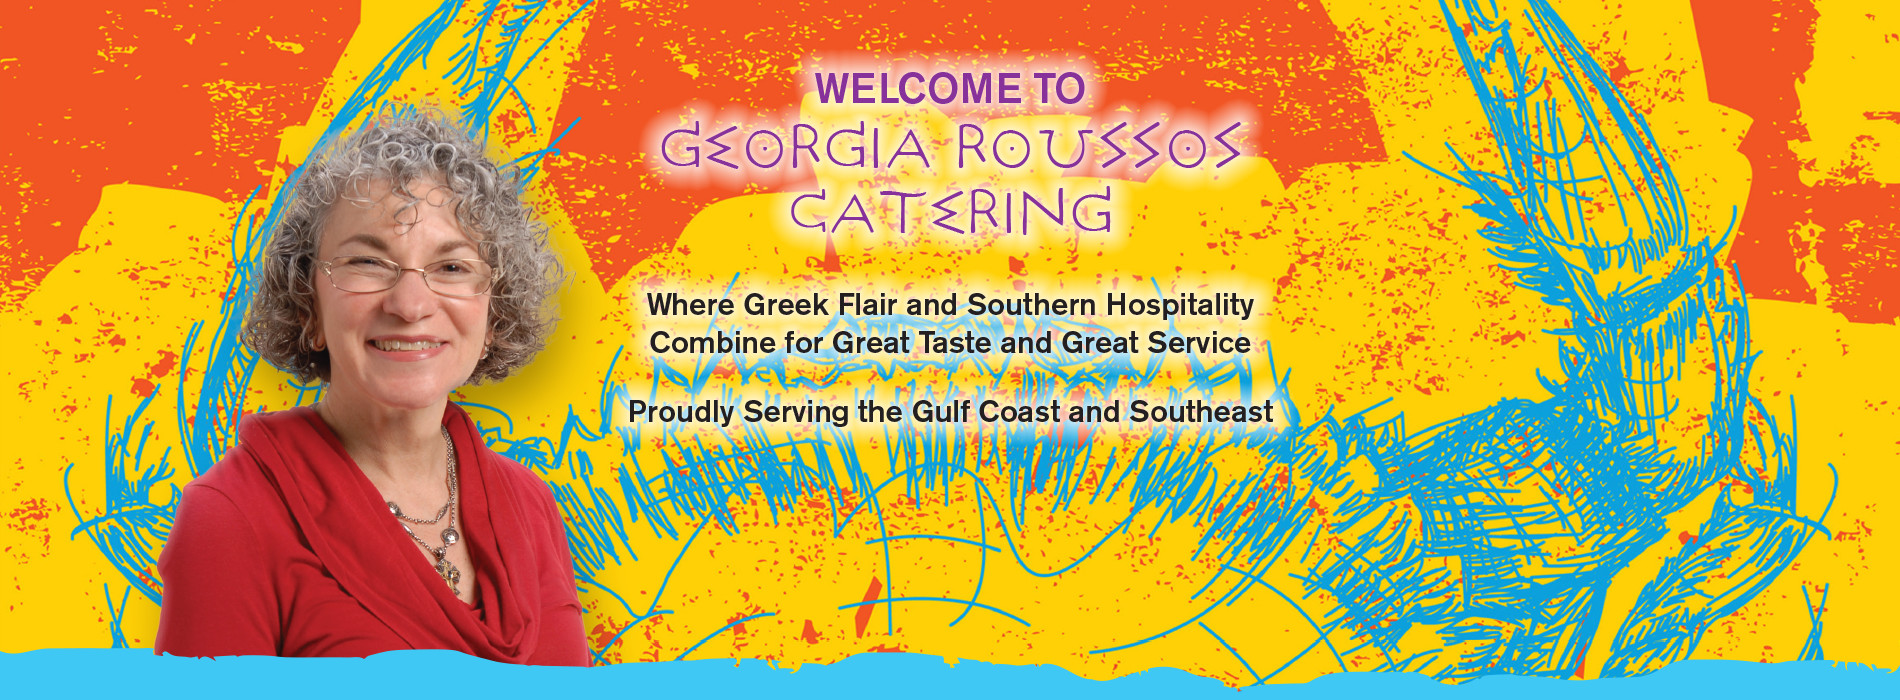 Welcome to Georgia Roussos Catering